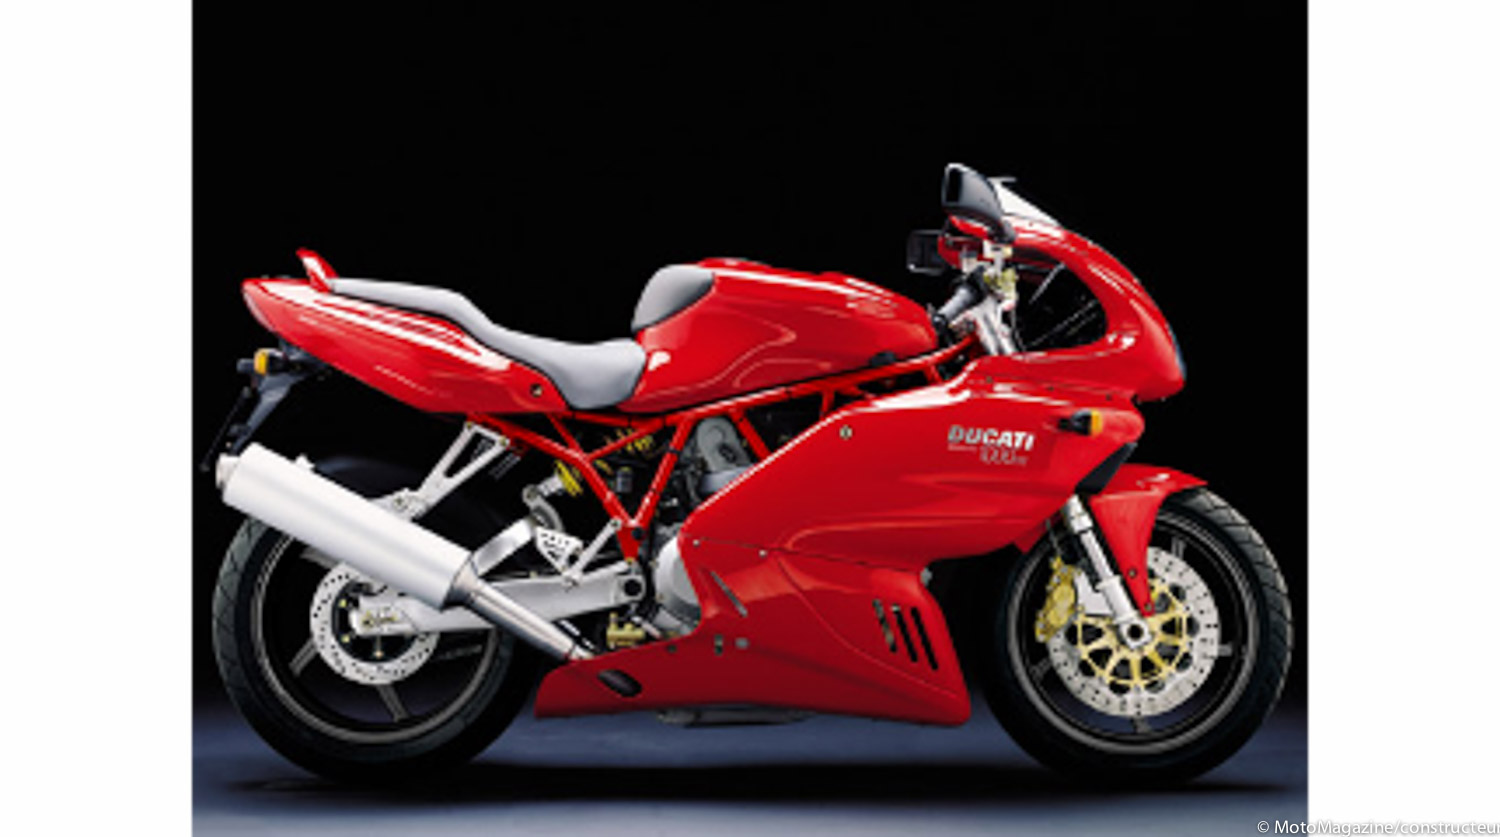 La Ducati Supersport 1000 DS de 2006